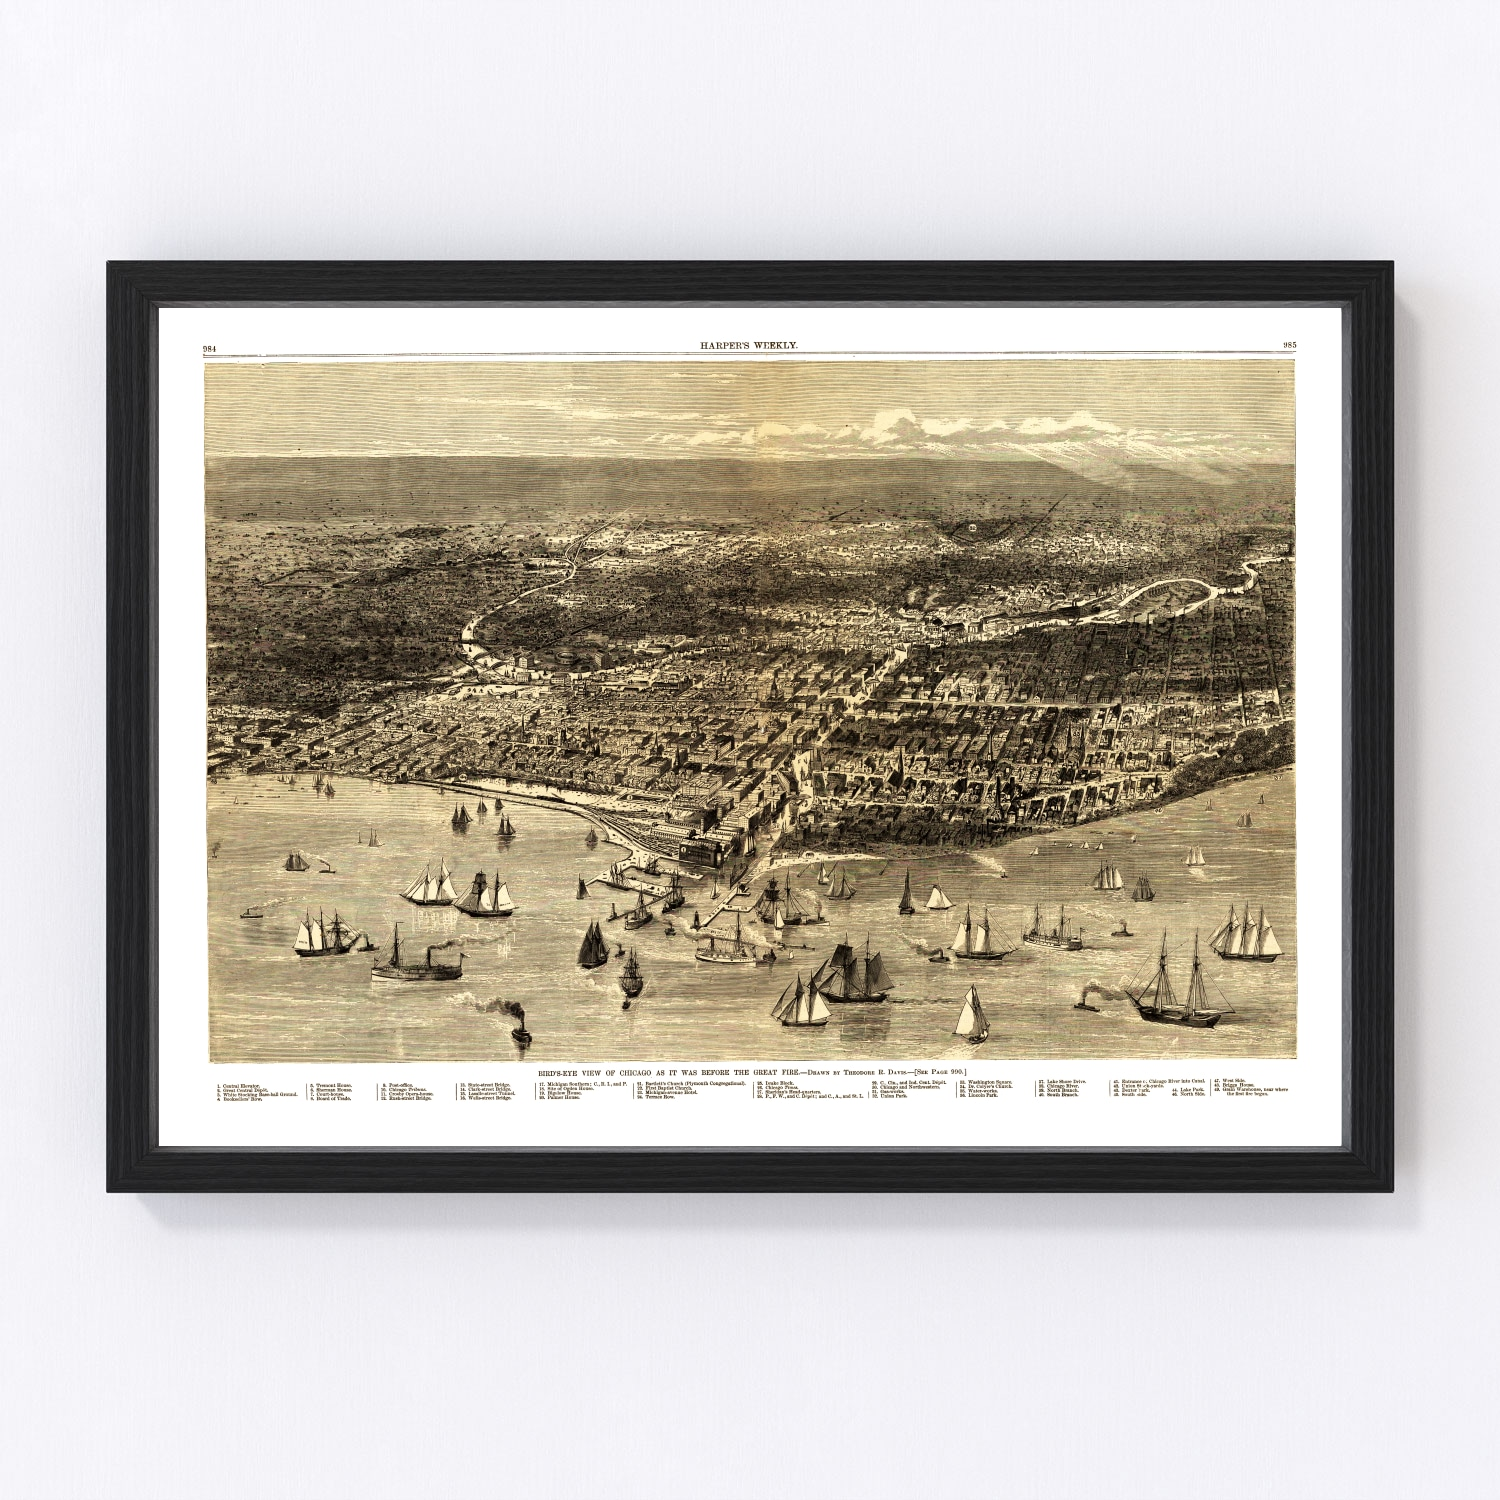 Vintage Map of Chicago, Illinois 1871